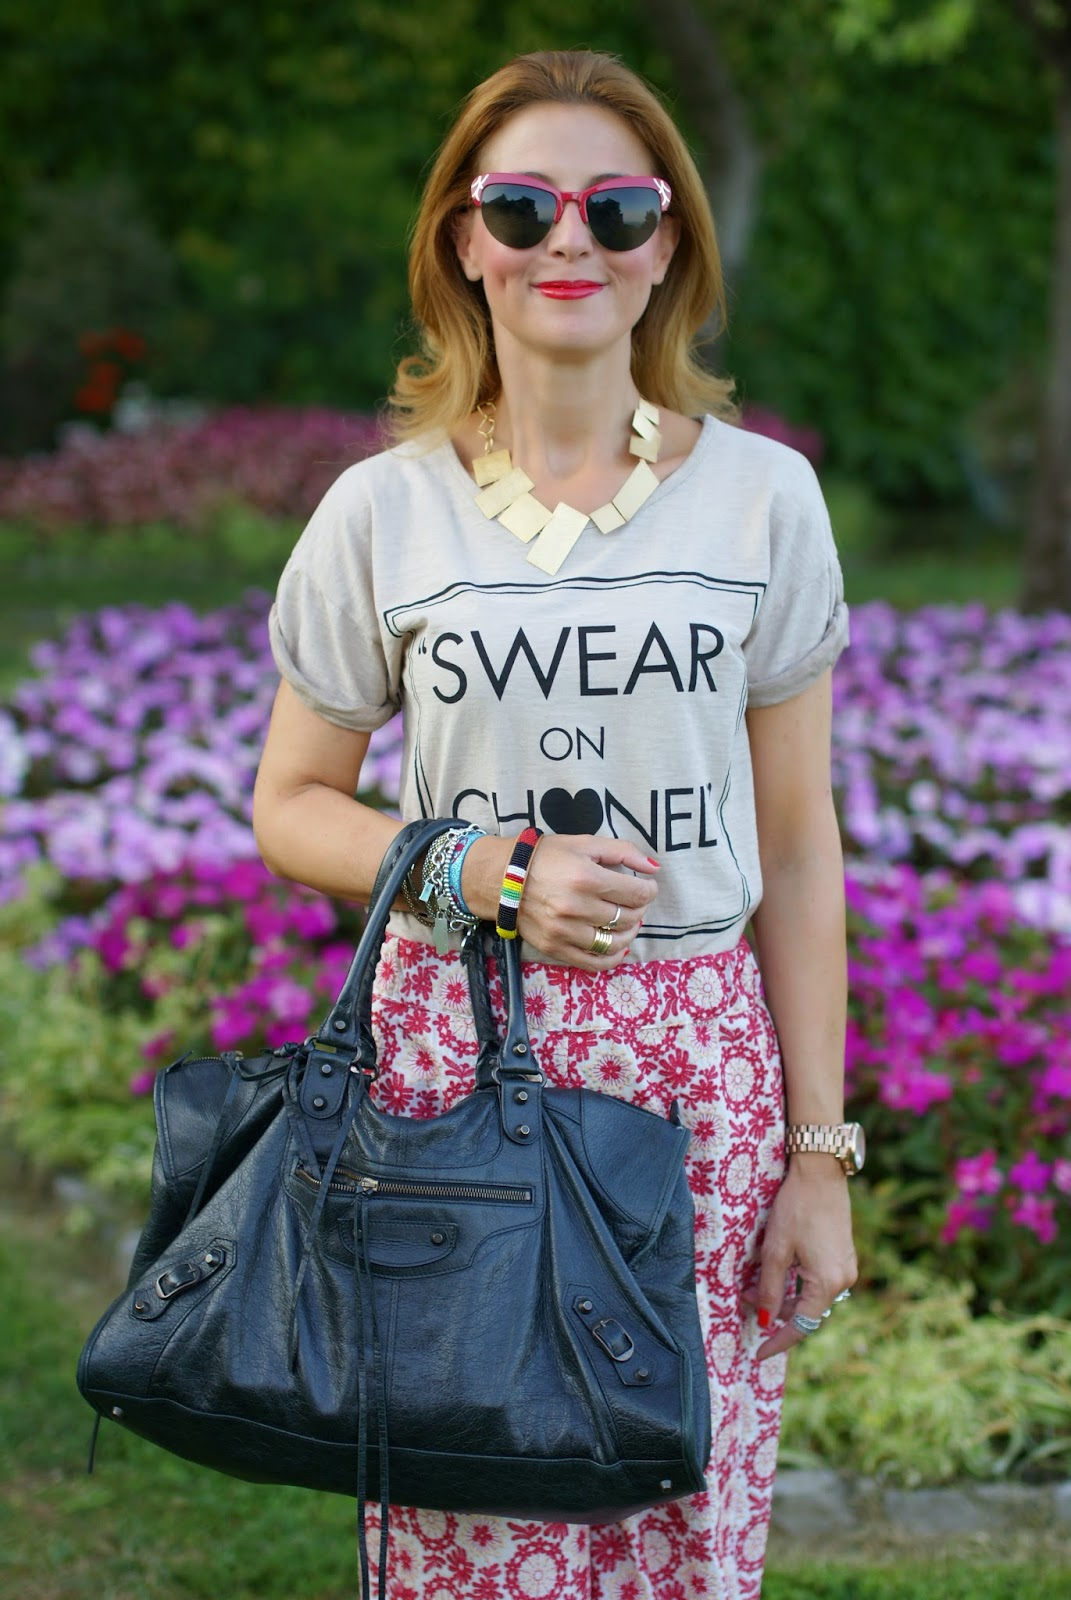 Swear on Chanel t-shirt, Vitti Ferria Contin collana dorata, Spitfire sunglasses, Balenciaga work bag, Rose a pois culottes pants, Fashion and Cookies, fashion blogger